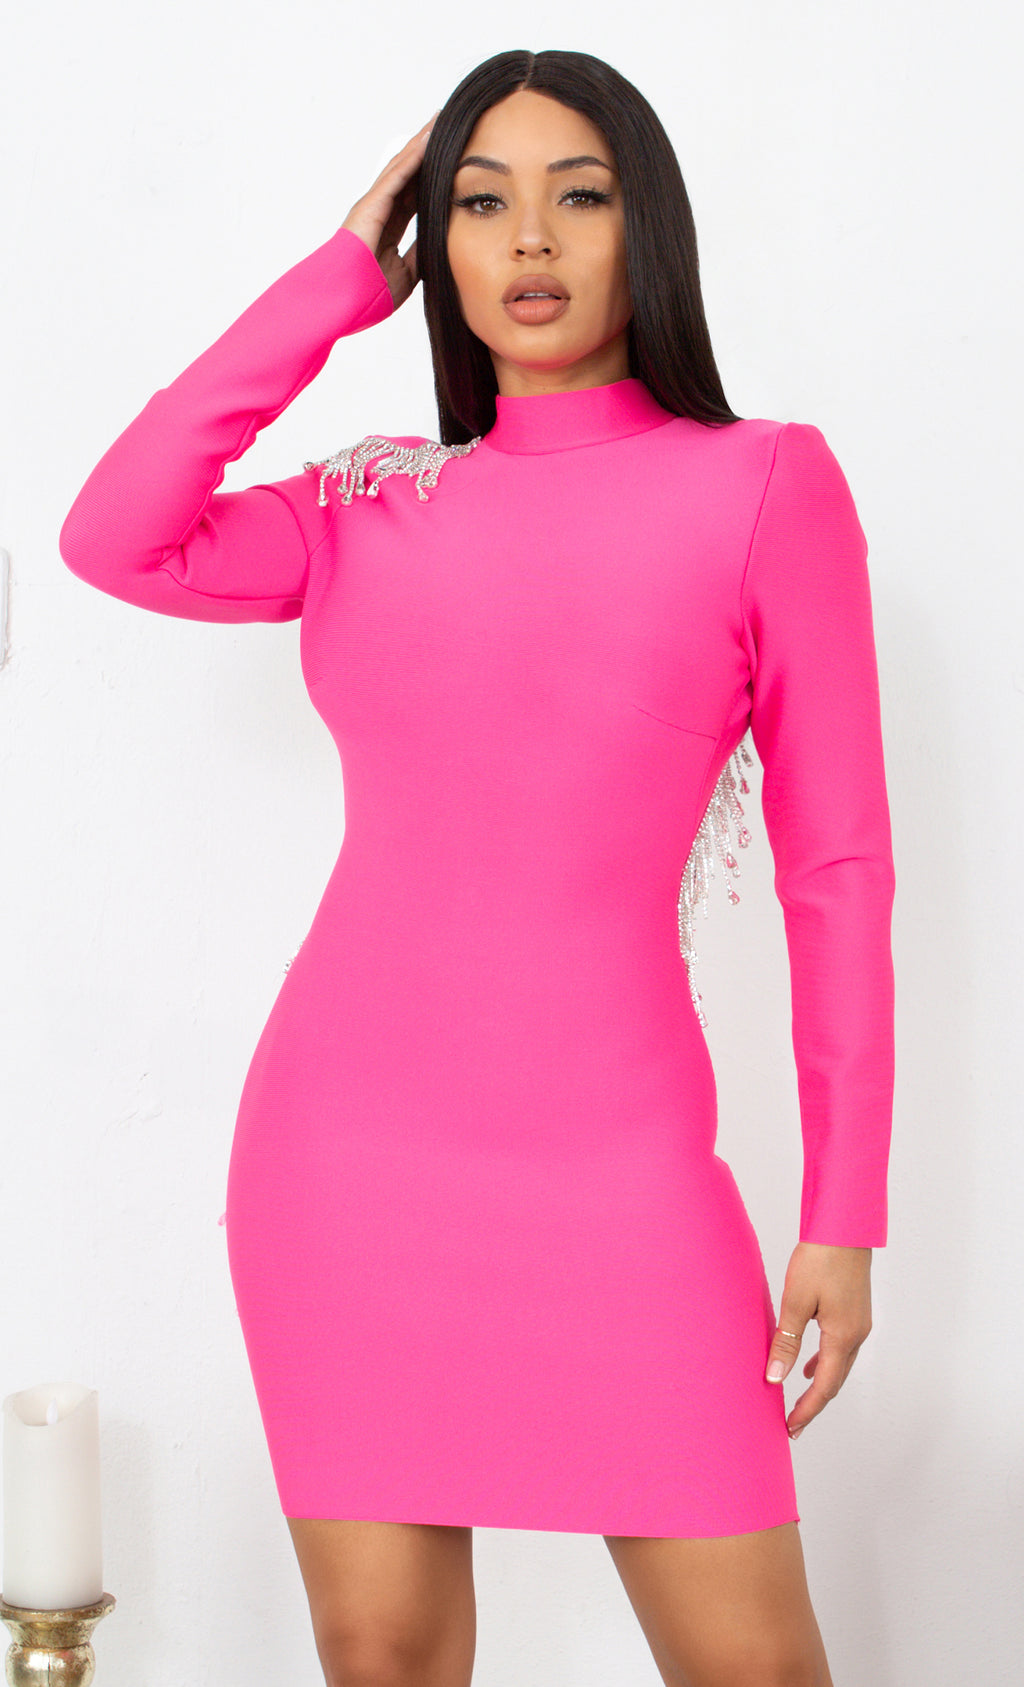 Fatal Attraction Hot Fuchsia Pink Bandage Long Sleeve Cut Out Open Back Rhinestone Fringe Bodycon Mini Dress